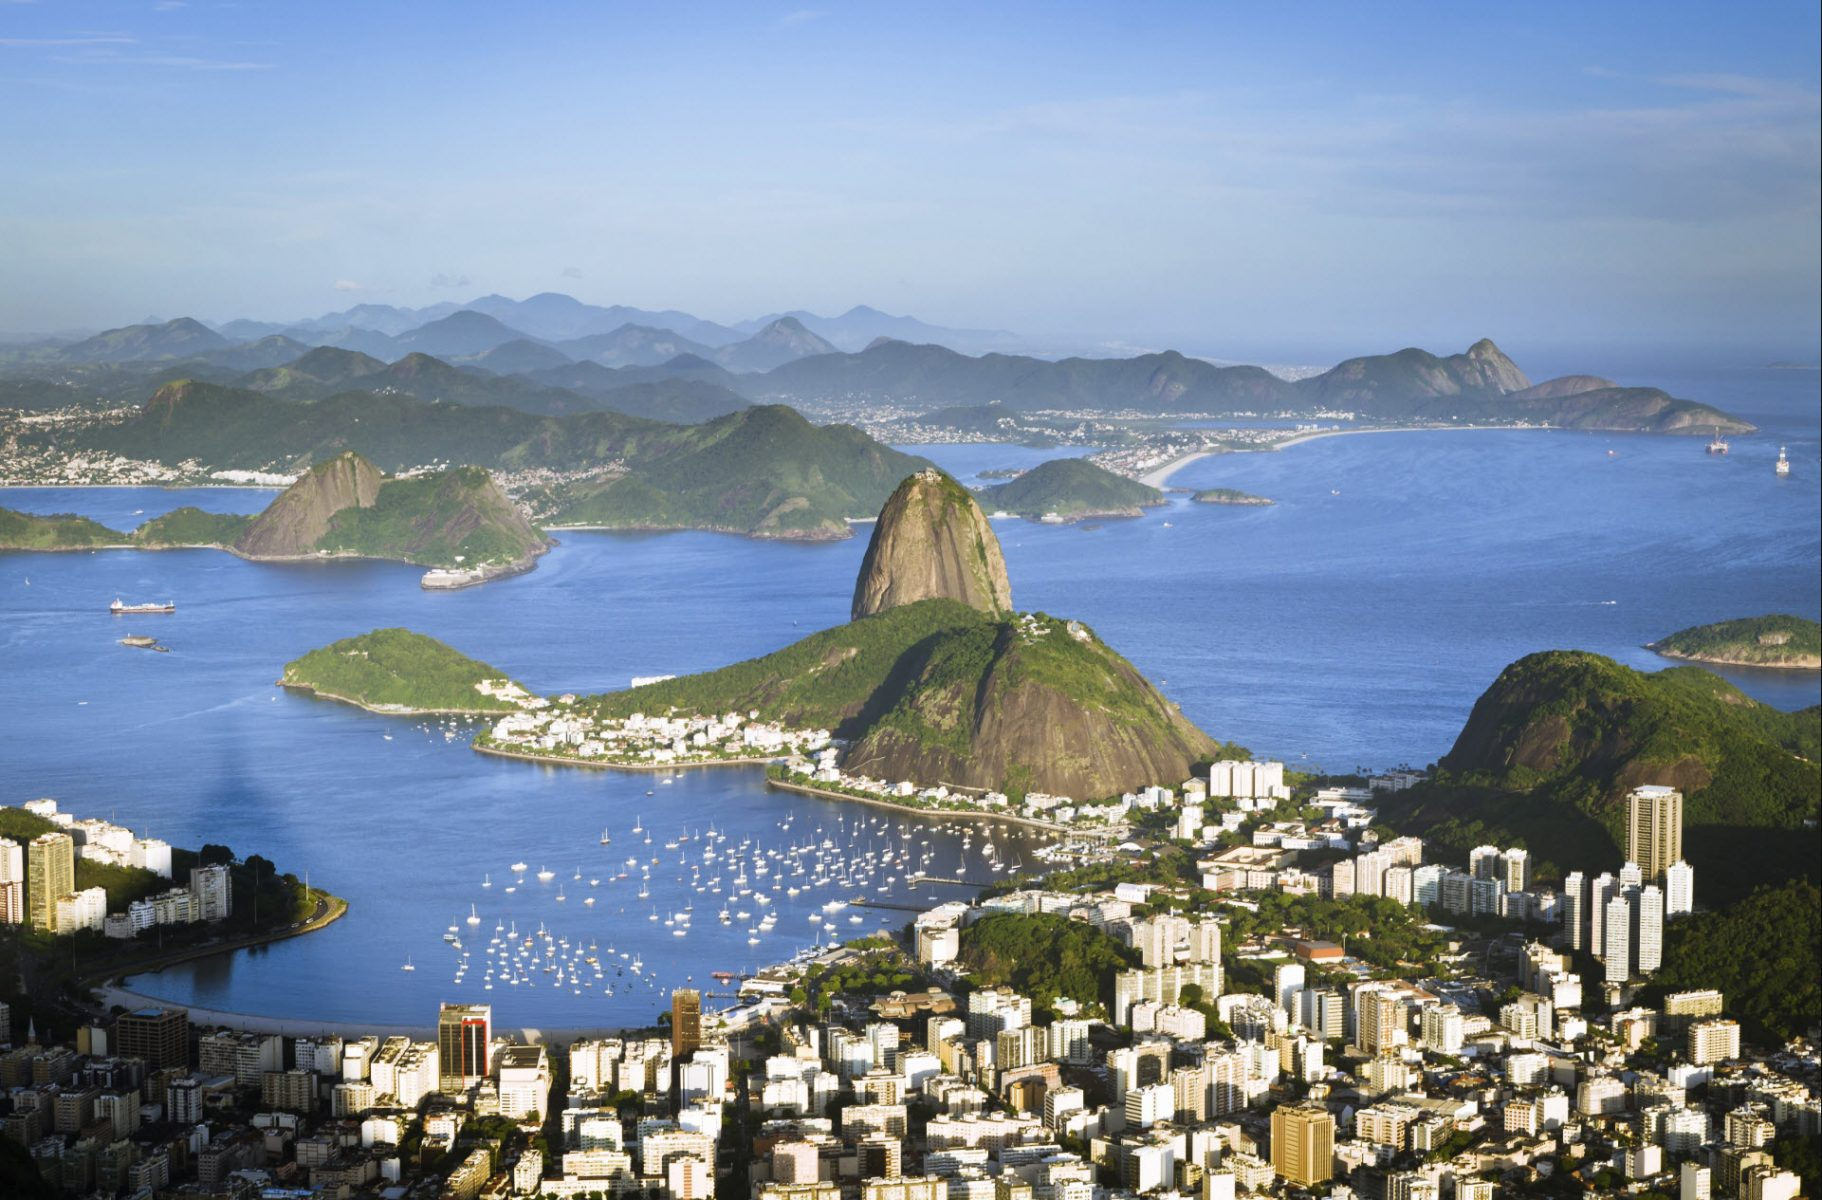 Sale Alert: Fly to Brazil Starting at $383 Round-Trip in Coach